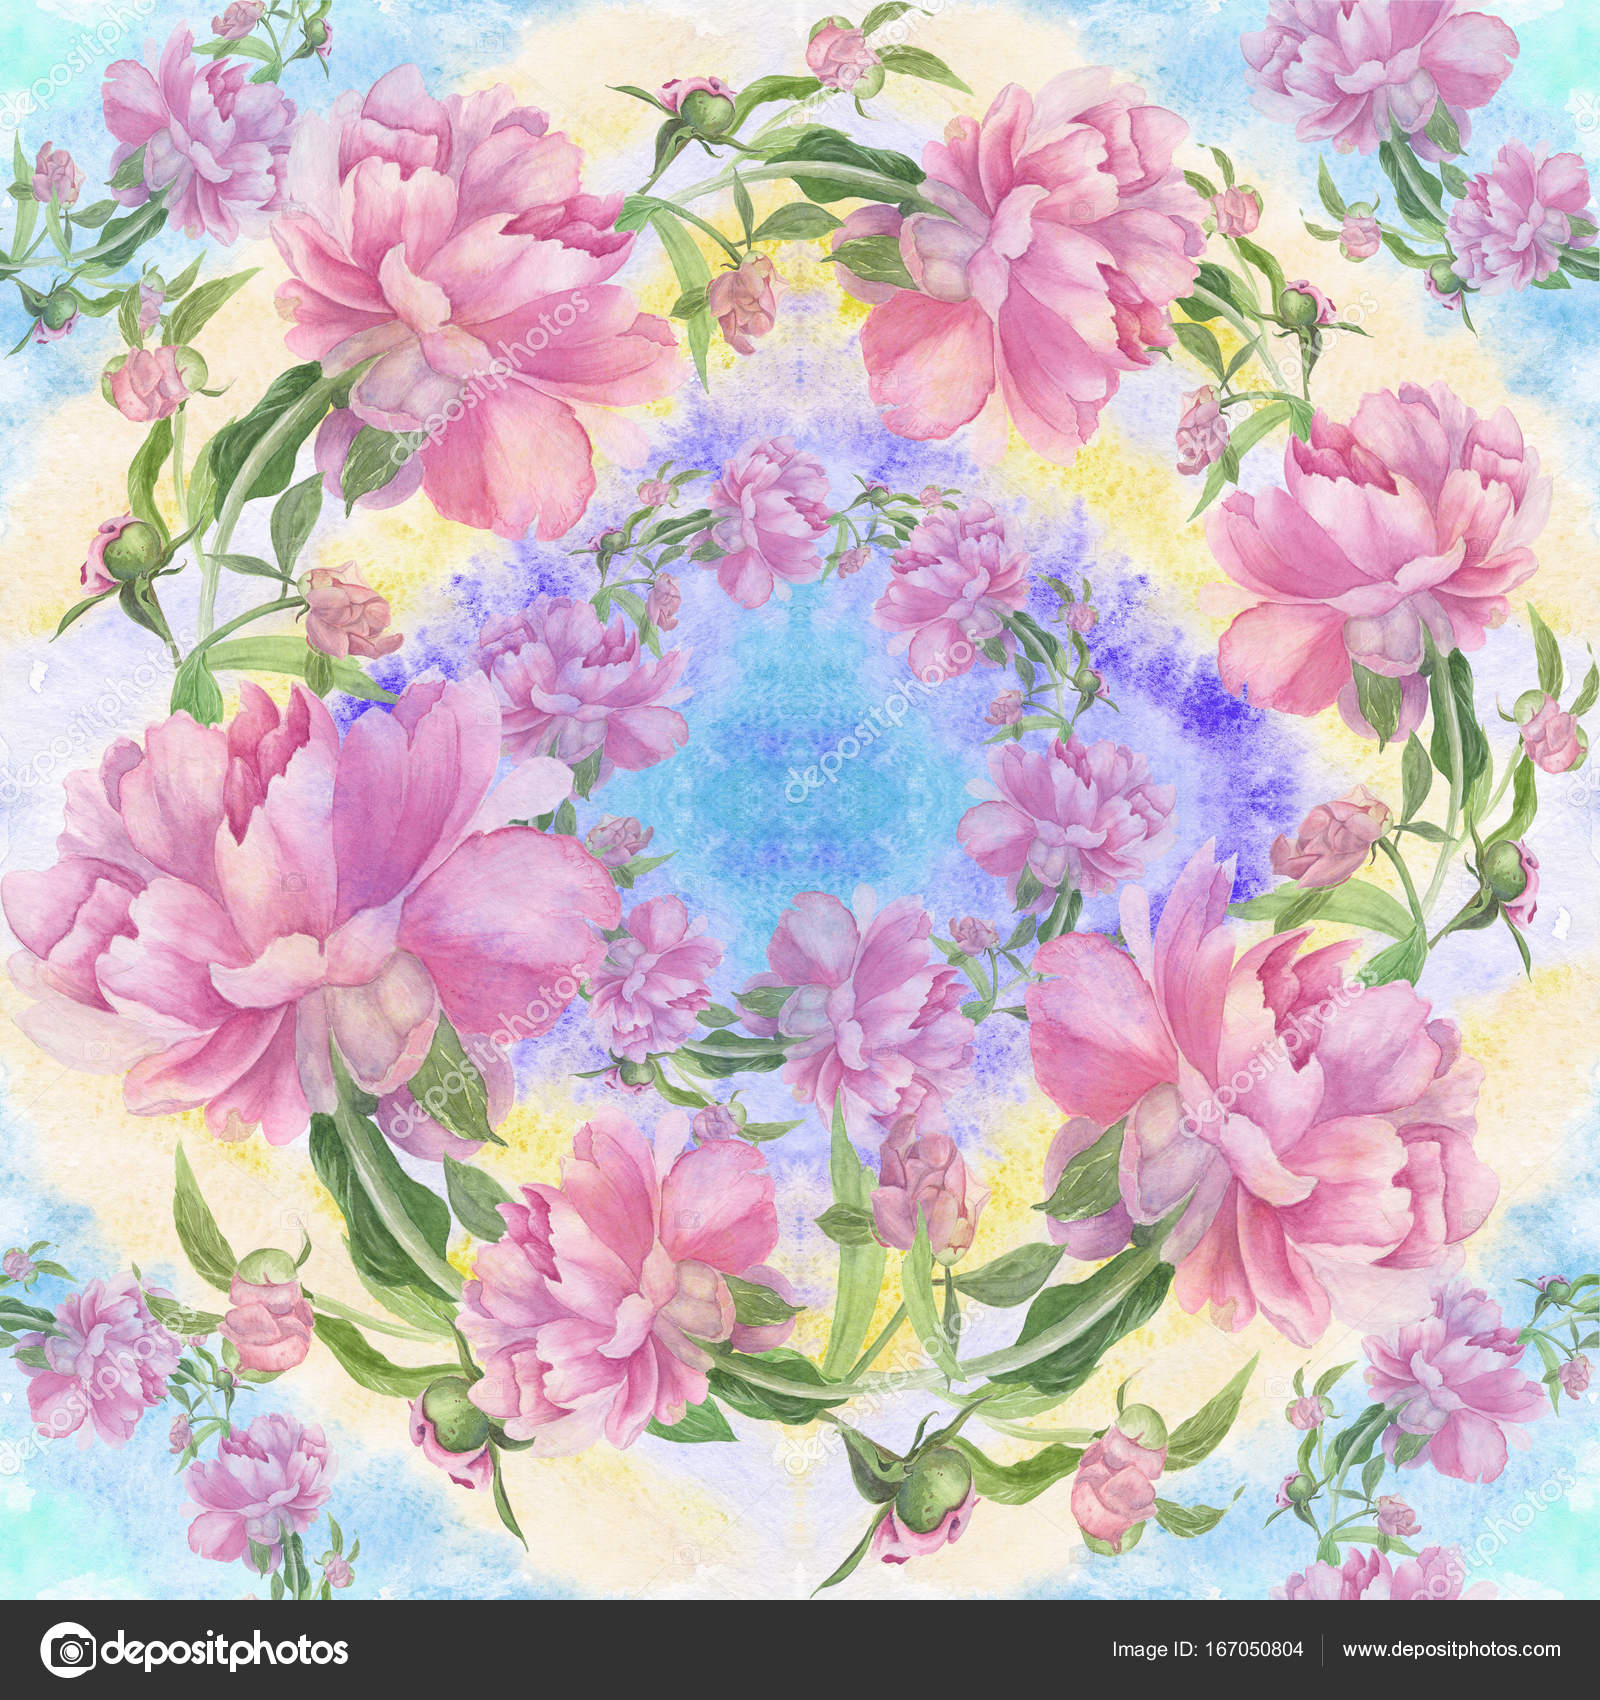 Peonies Are Flowers And Buds Watercolor Seamless Pattern Wallpaper Use Printed Materials